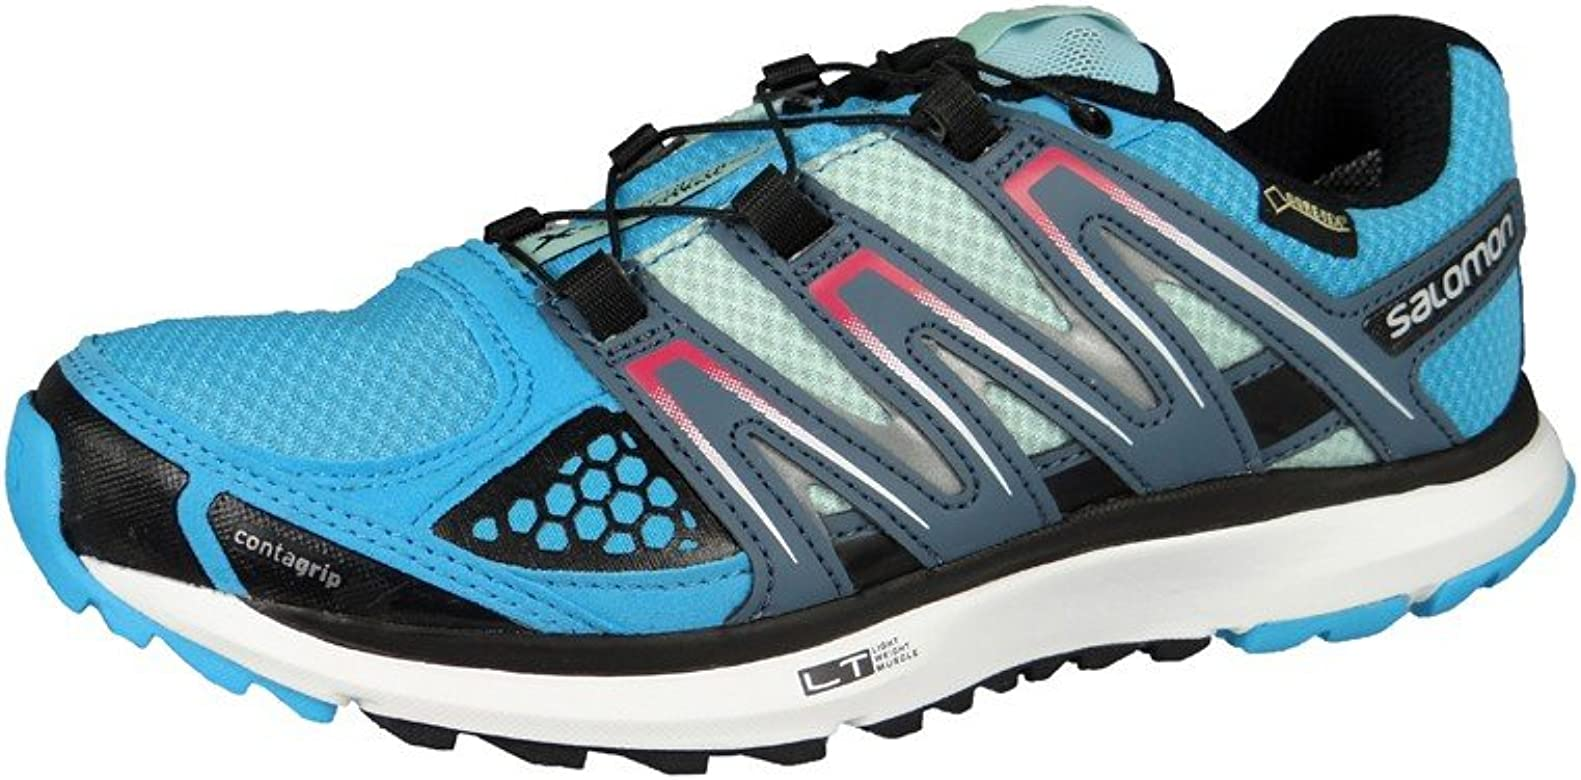 Zapatillas para trail running Salomon X-Scream GTX gris/azul para mujer Talla 38 2015: Amazon.es: Zapatos y complementos